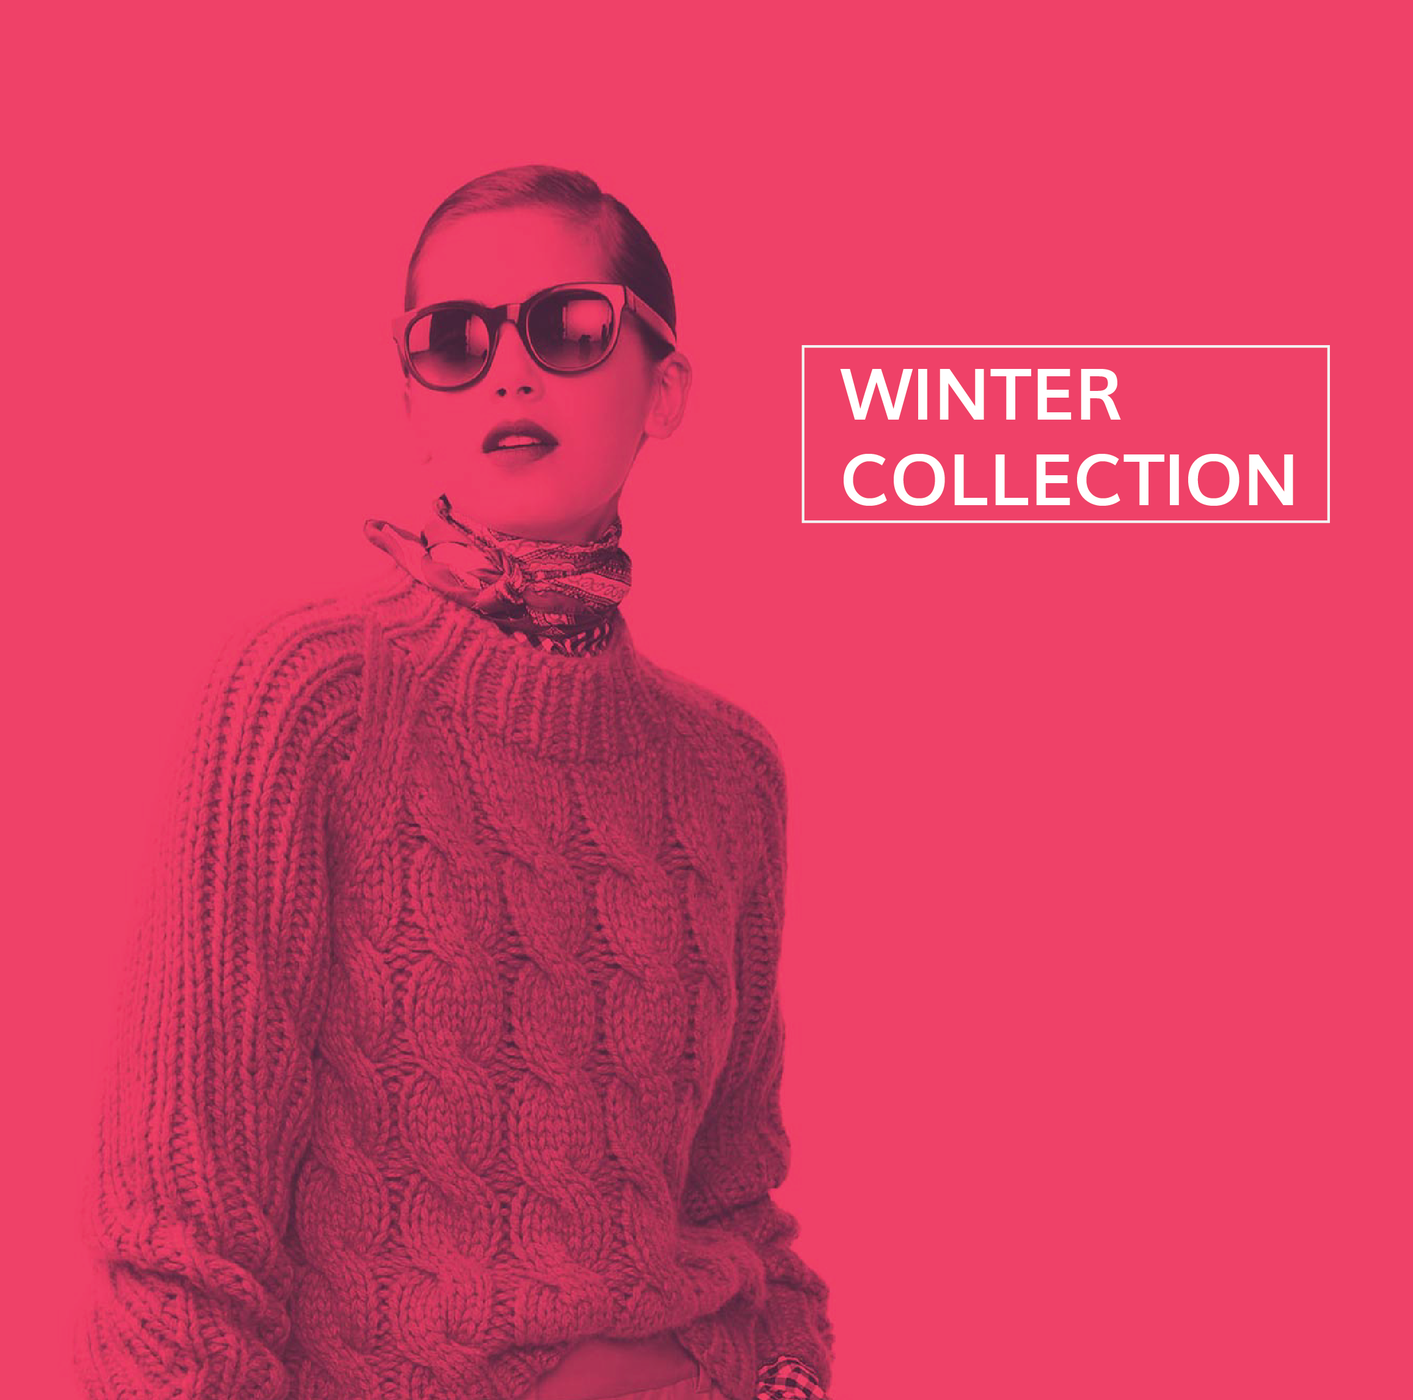 Winter Collections